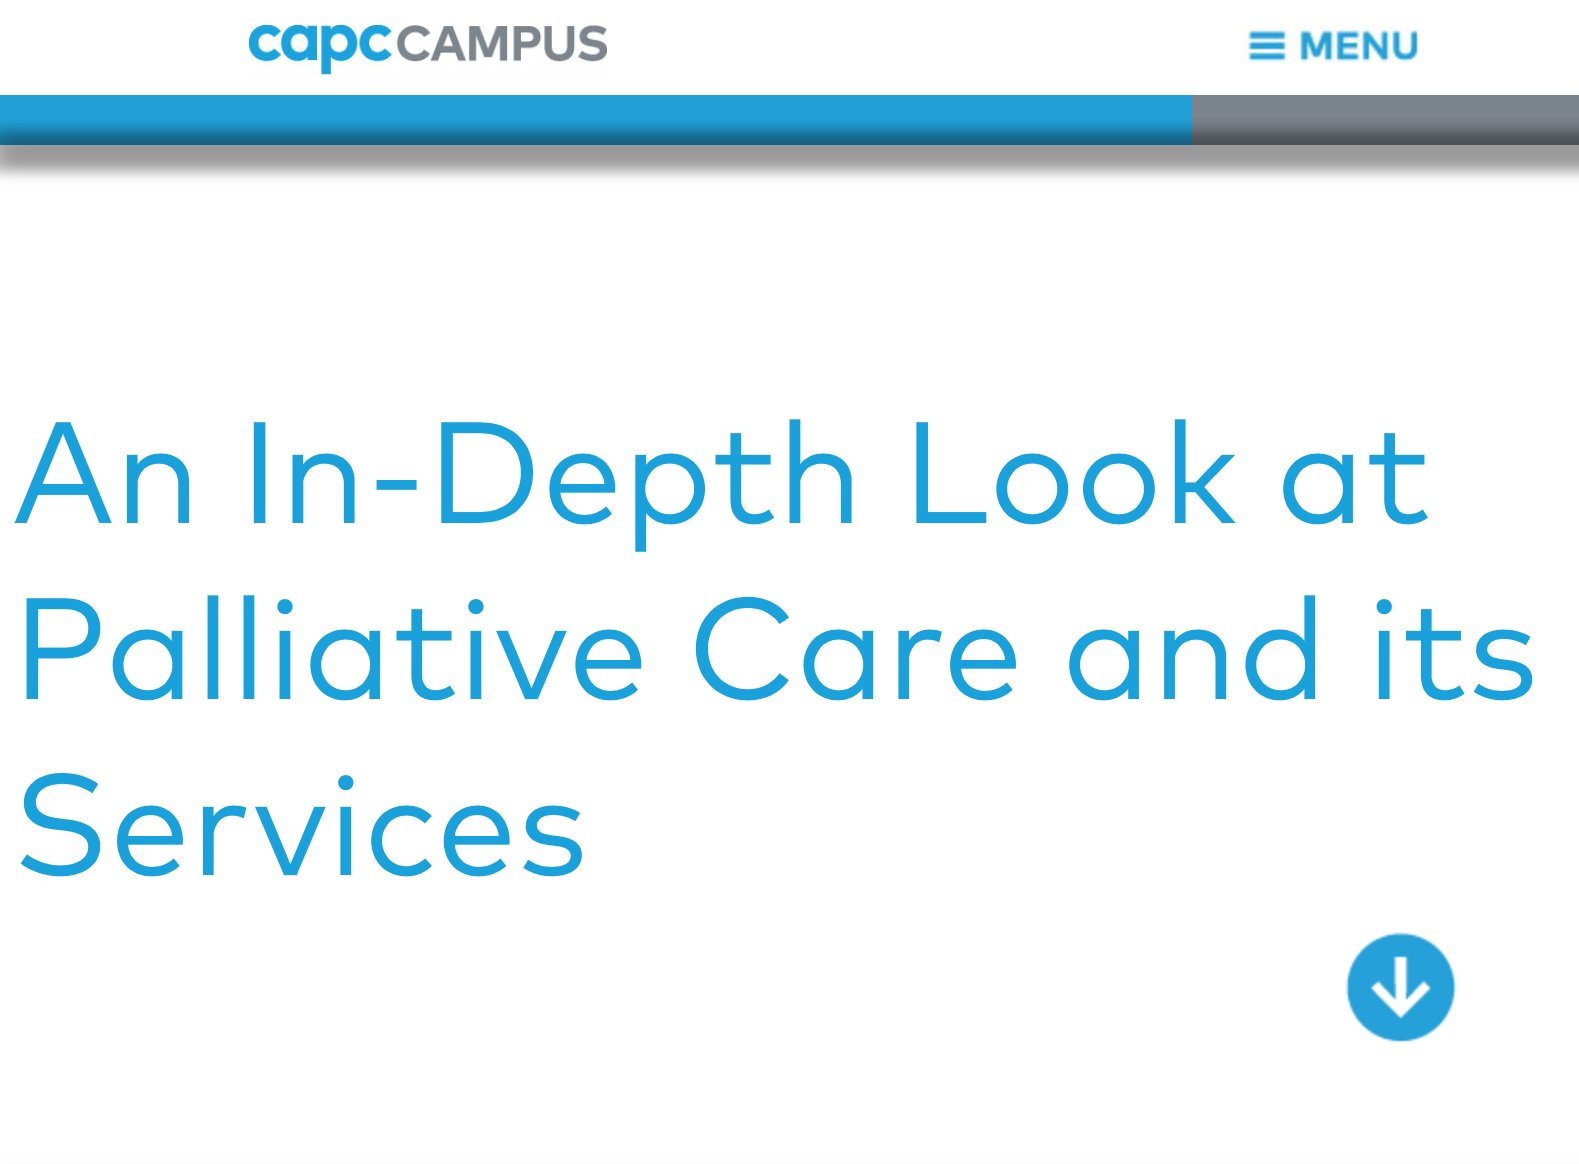 capc-course-demo-an-in-depth-look-at-palliative-care-and-its-services.png